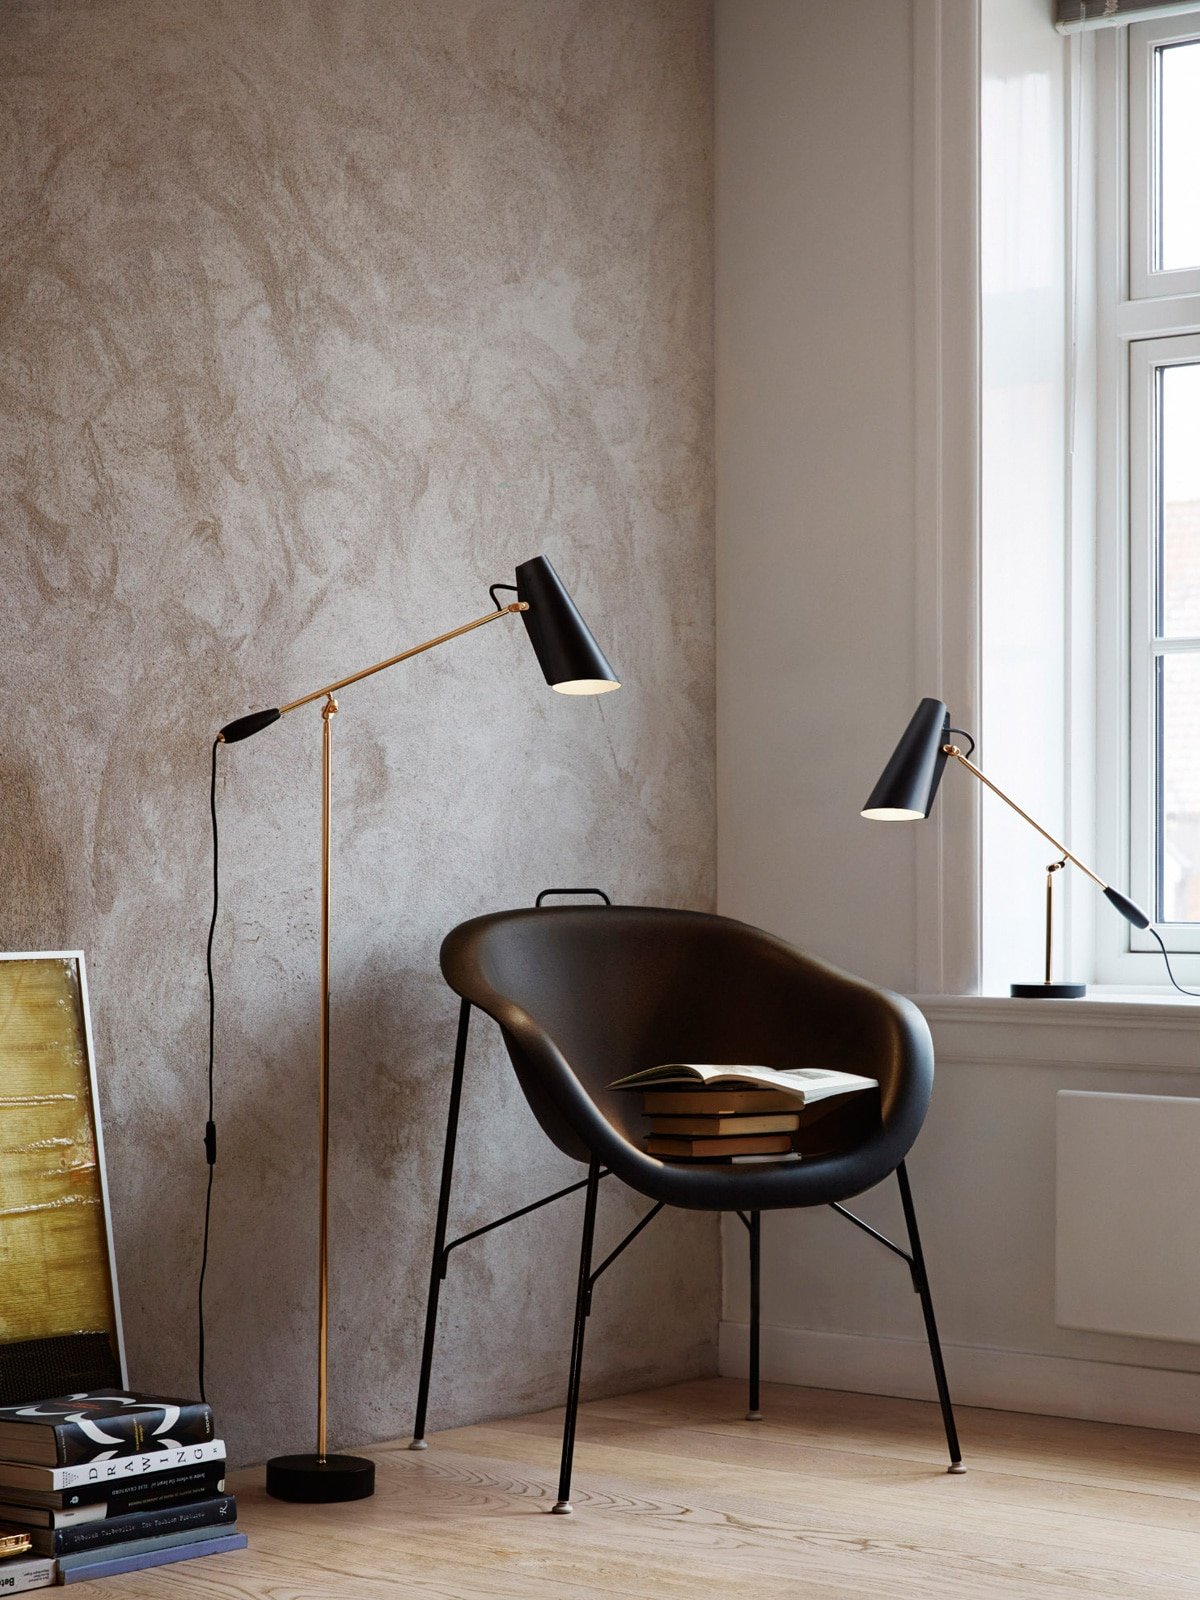 DesignOrt Blog Best of - Birdy Stehleuchte und Tischlampe Northern Lighting Birger Dahl